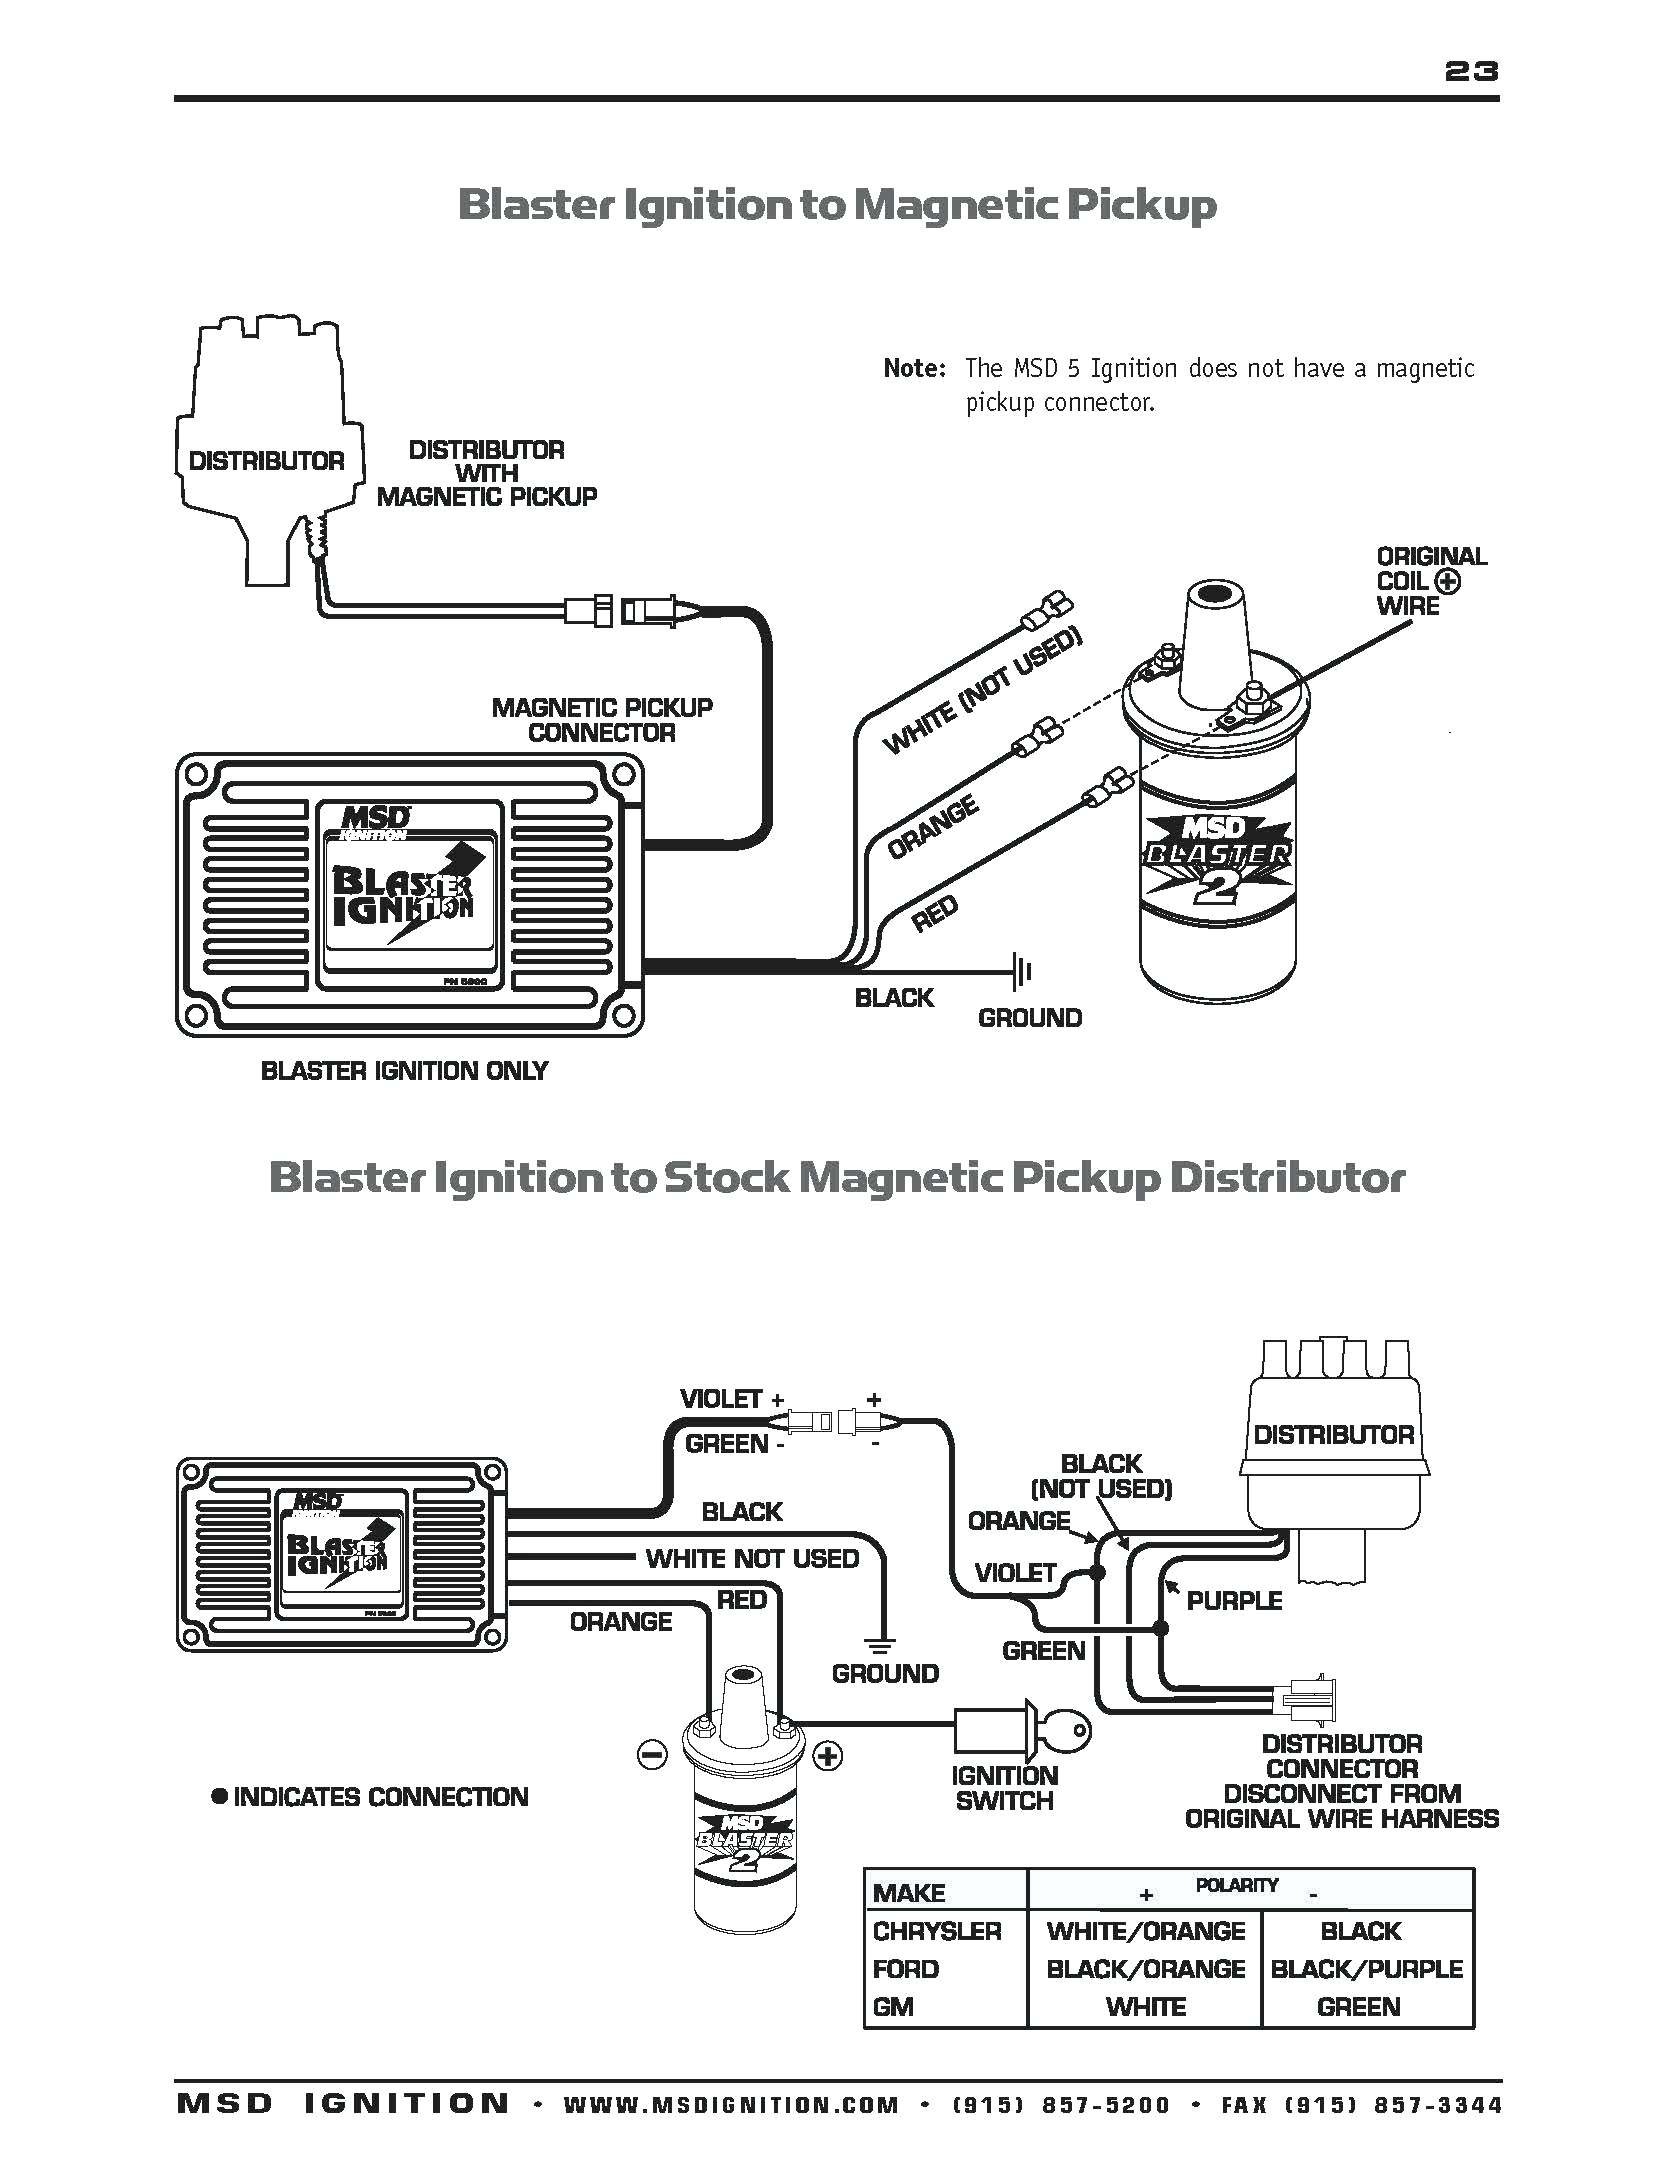 Msd 5520 Ignition Wiring Diagram - Preview Wiring Diagram Xv Wiring Diagram on